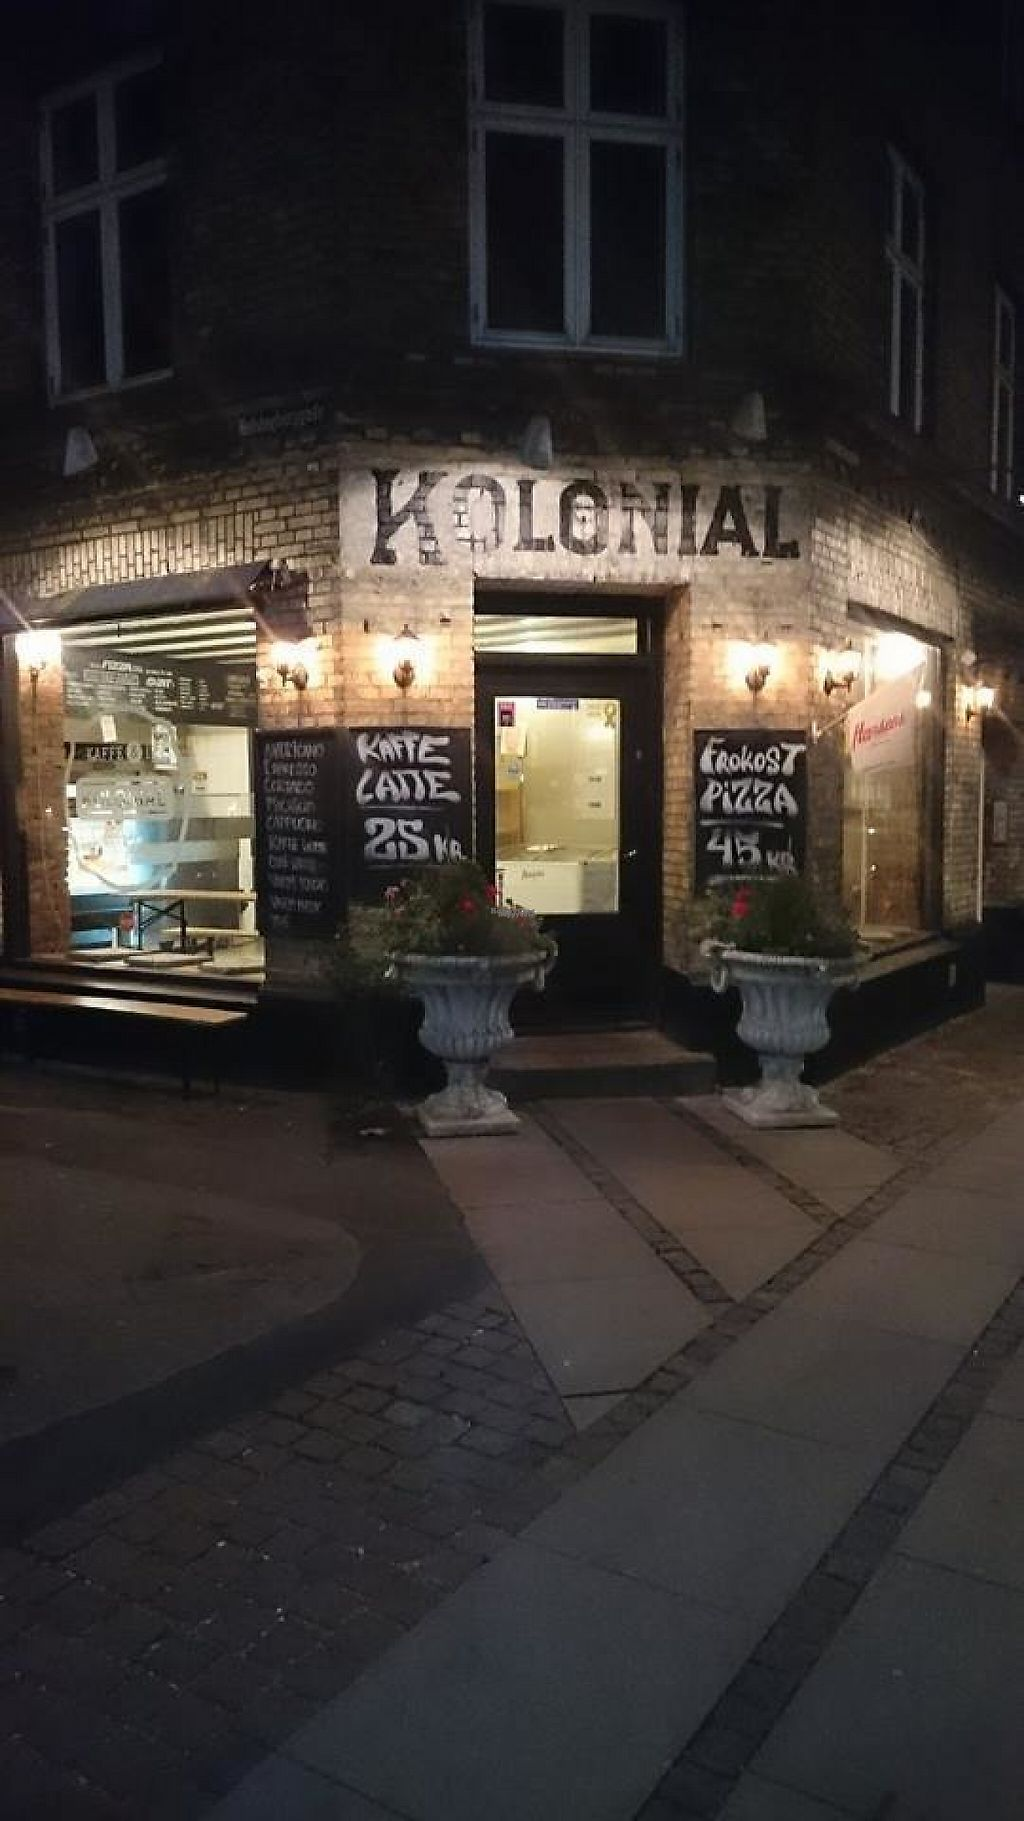 "Photo of Kolonial 2100 Pizzeria  by <a href=""/members/profile/community4"">community4</a> <br/>Kolonial 2100 Pizzeria